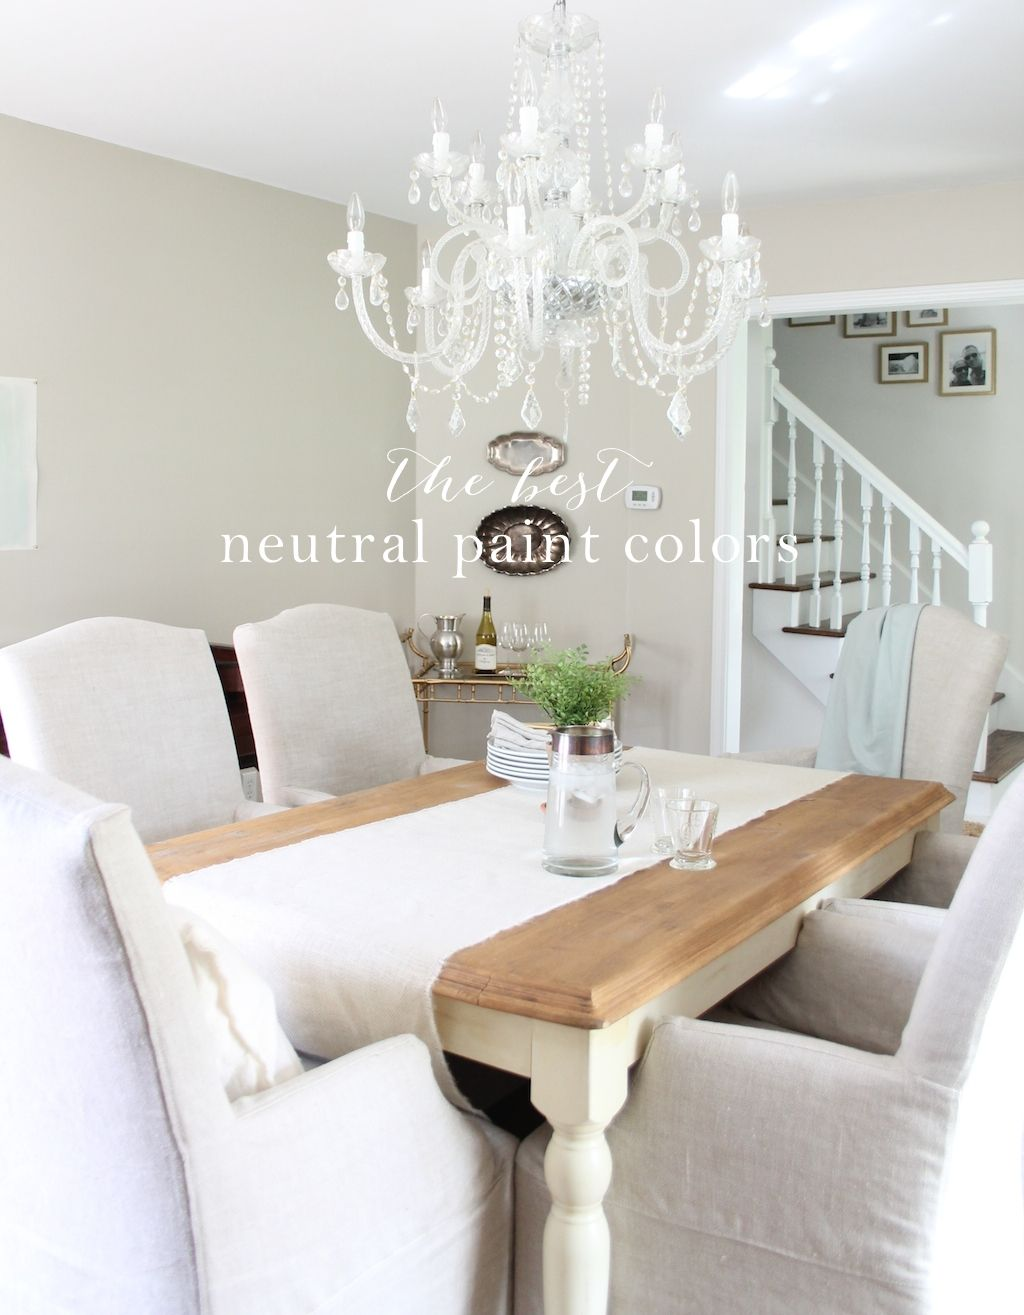 A Pretty Neutral Paint Palette That Transitions Well From Room To Get The Details